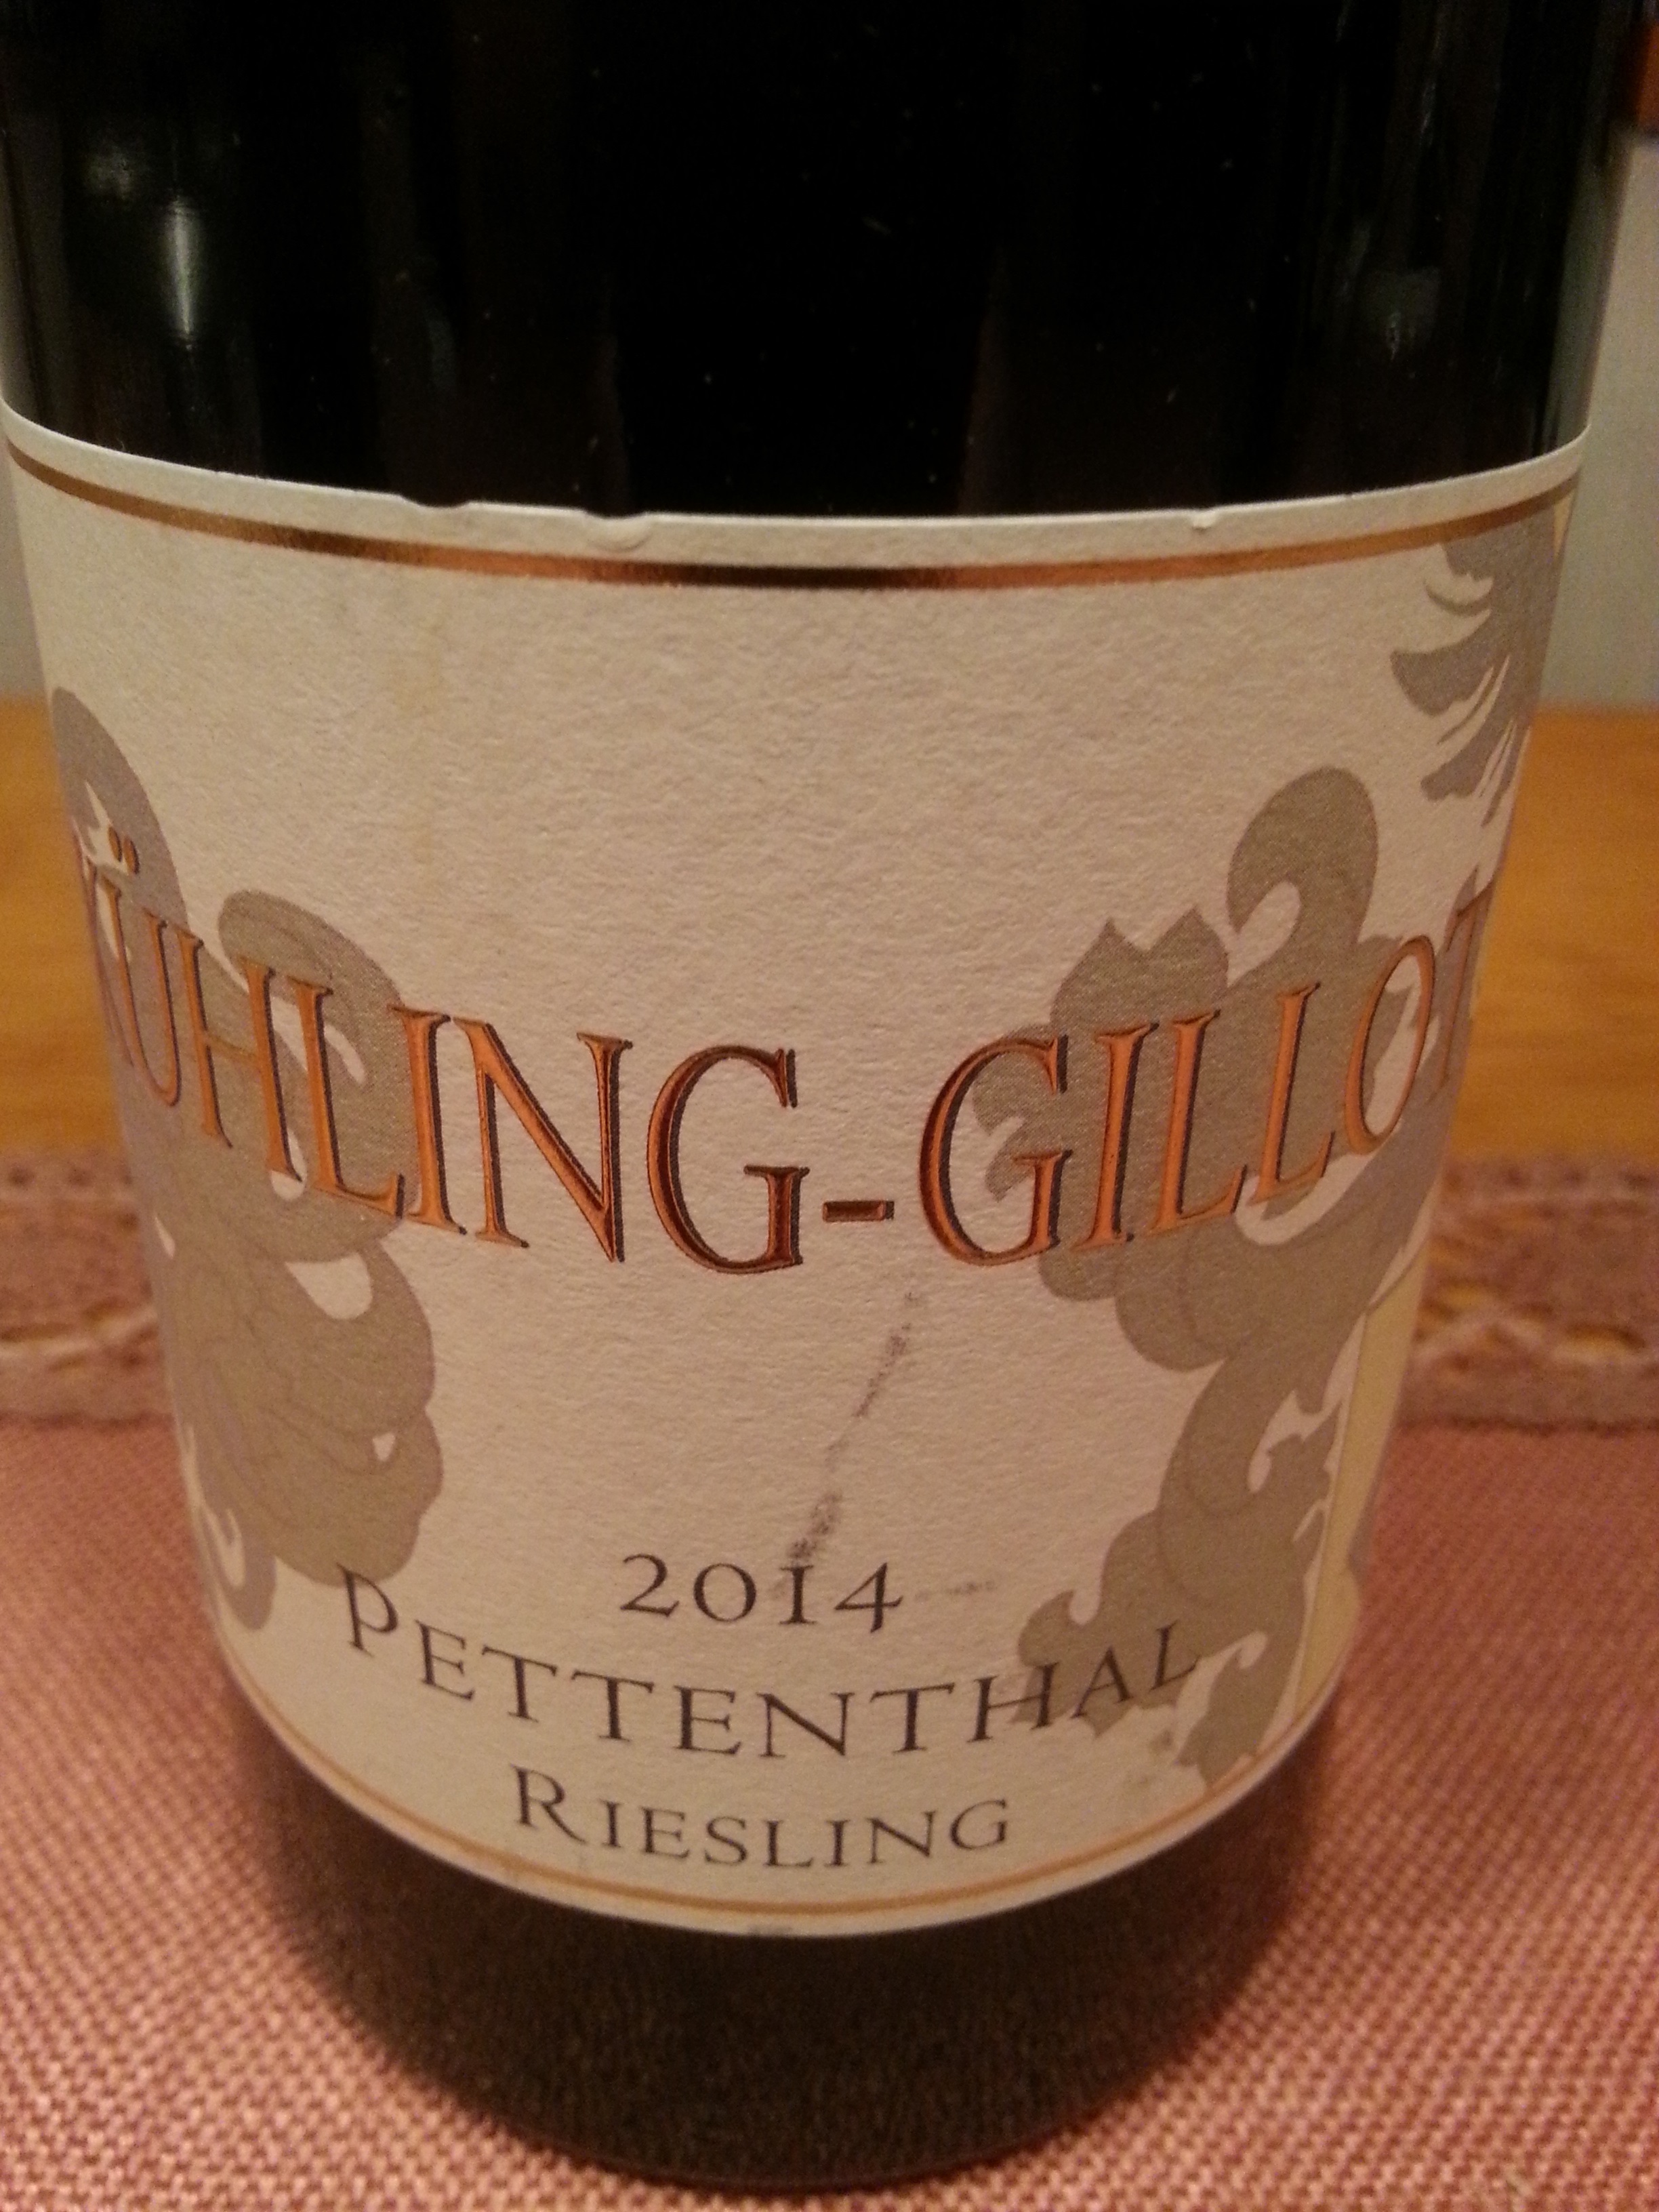 2014 Riesling Pettenthal GG | Kühling-Gillot